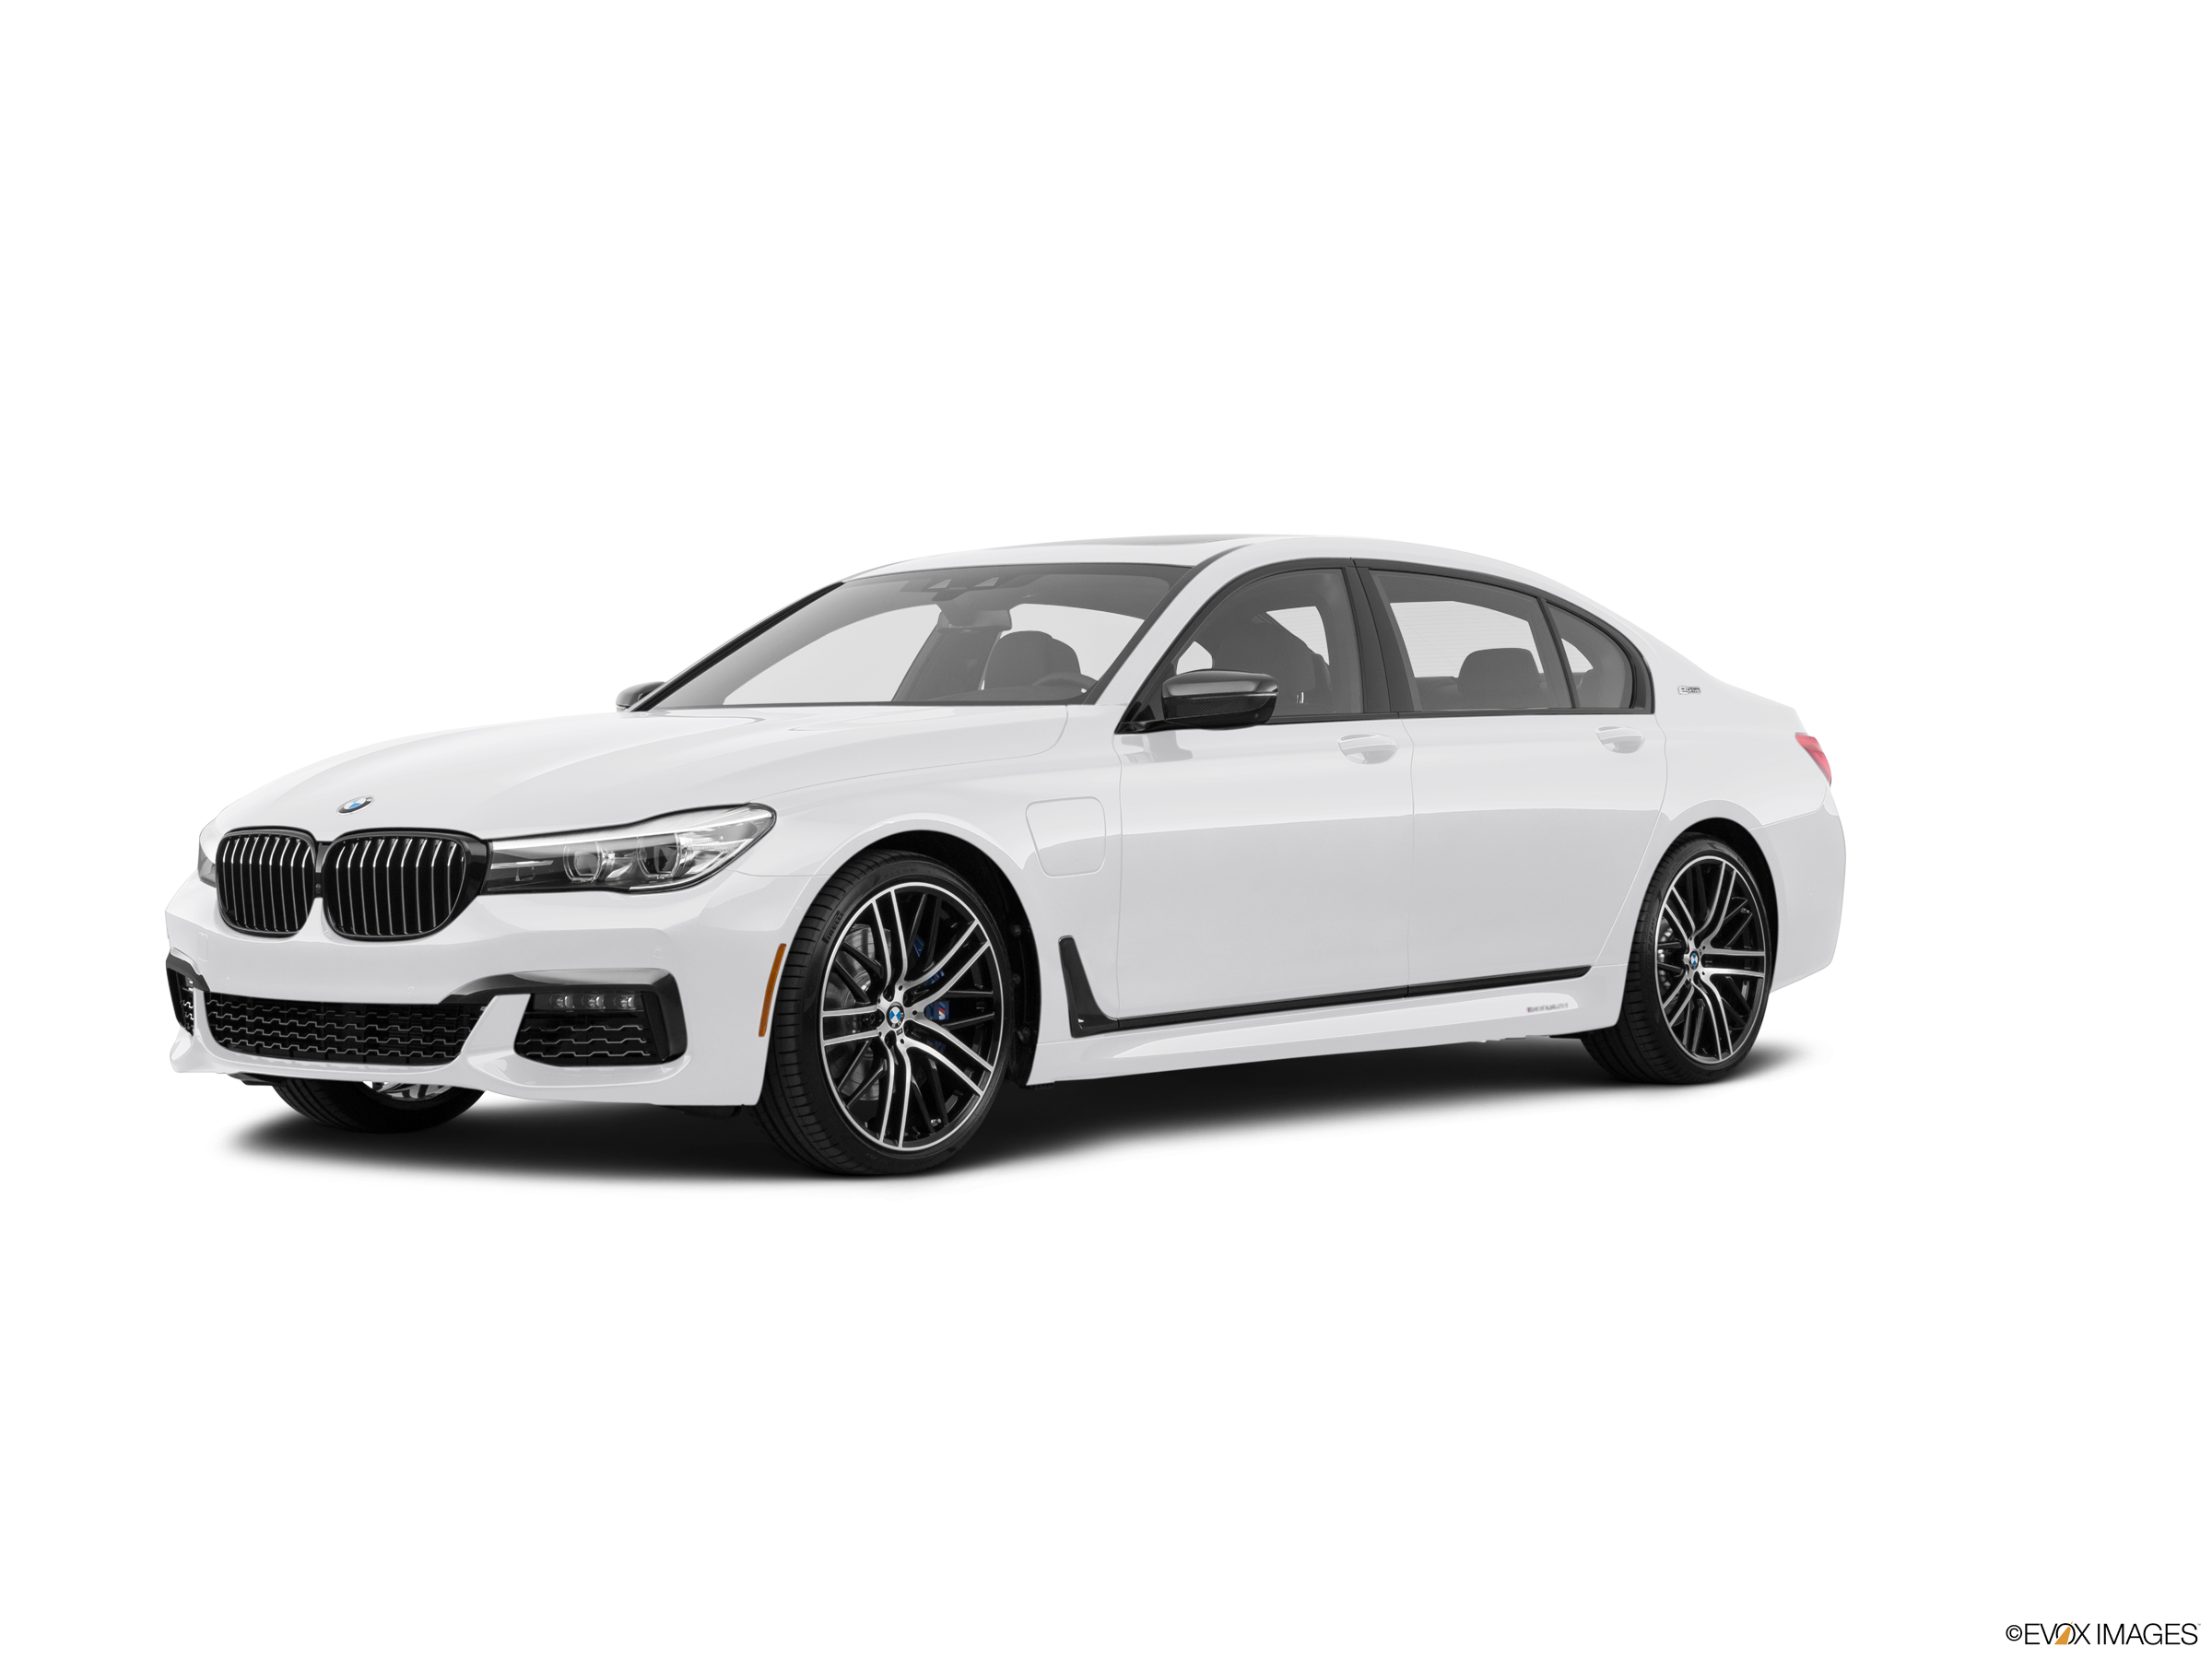 Highest Horsepower Electric Cars of 2018 - 2018 BMW 7 Series